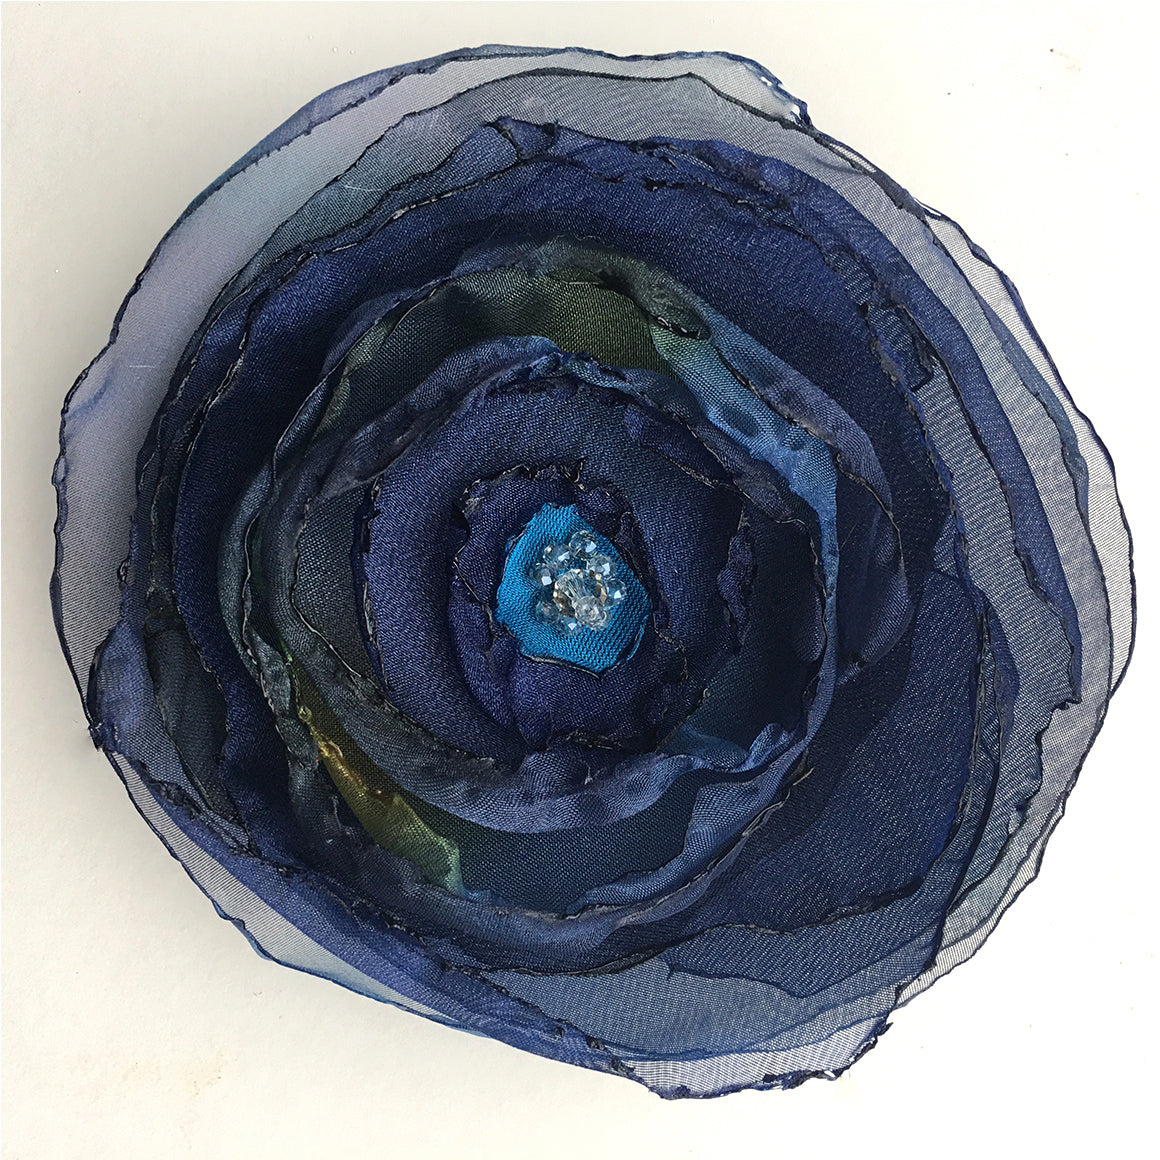 Imaginary Flower Brooch hand made by Yaja Hadrys